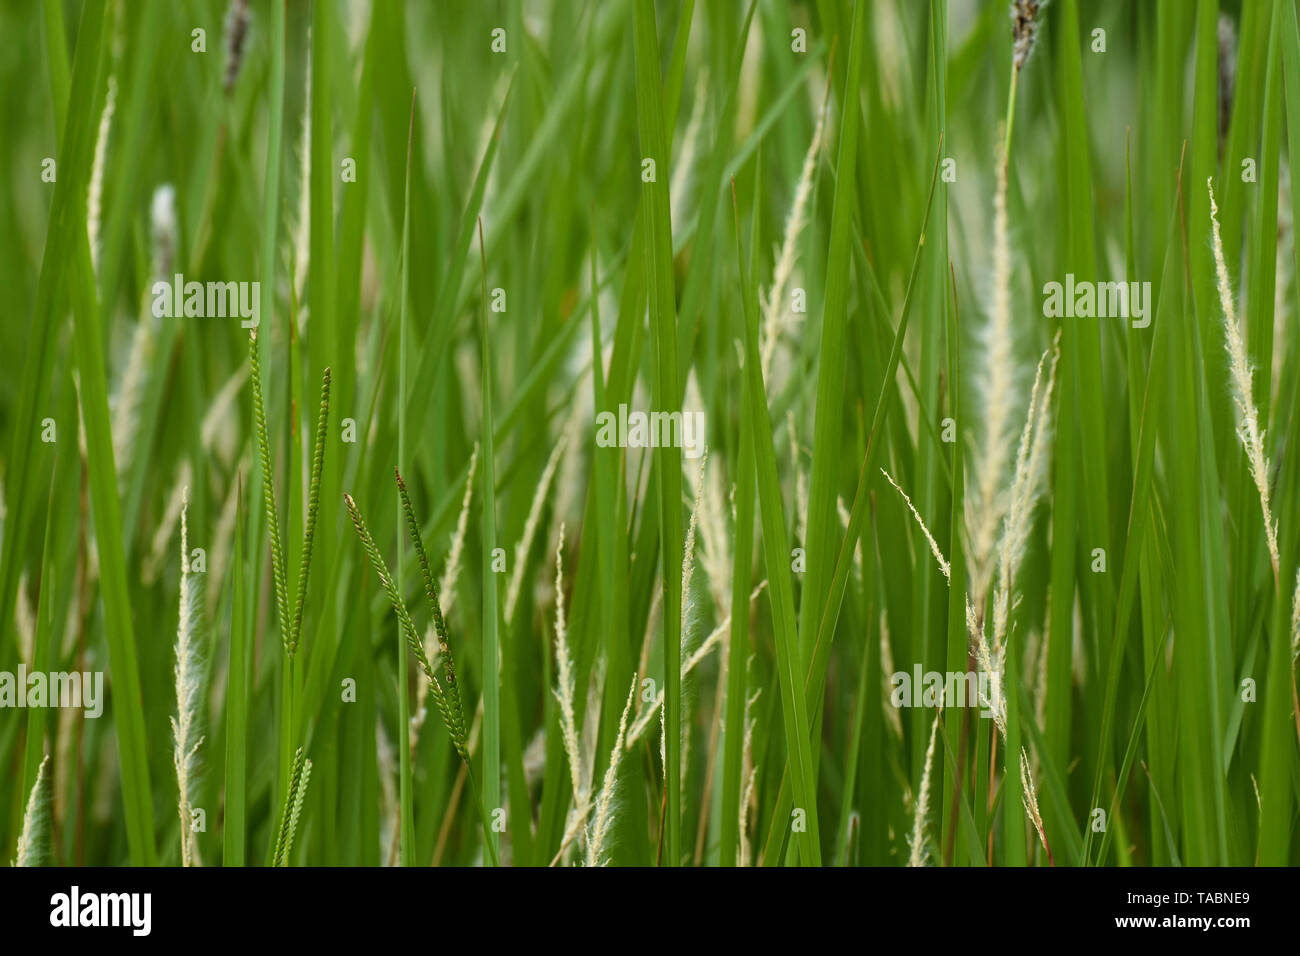 Green Grass Blades And Seeds Close-up Frame - Stock Image